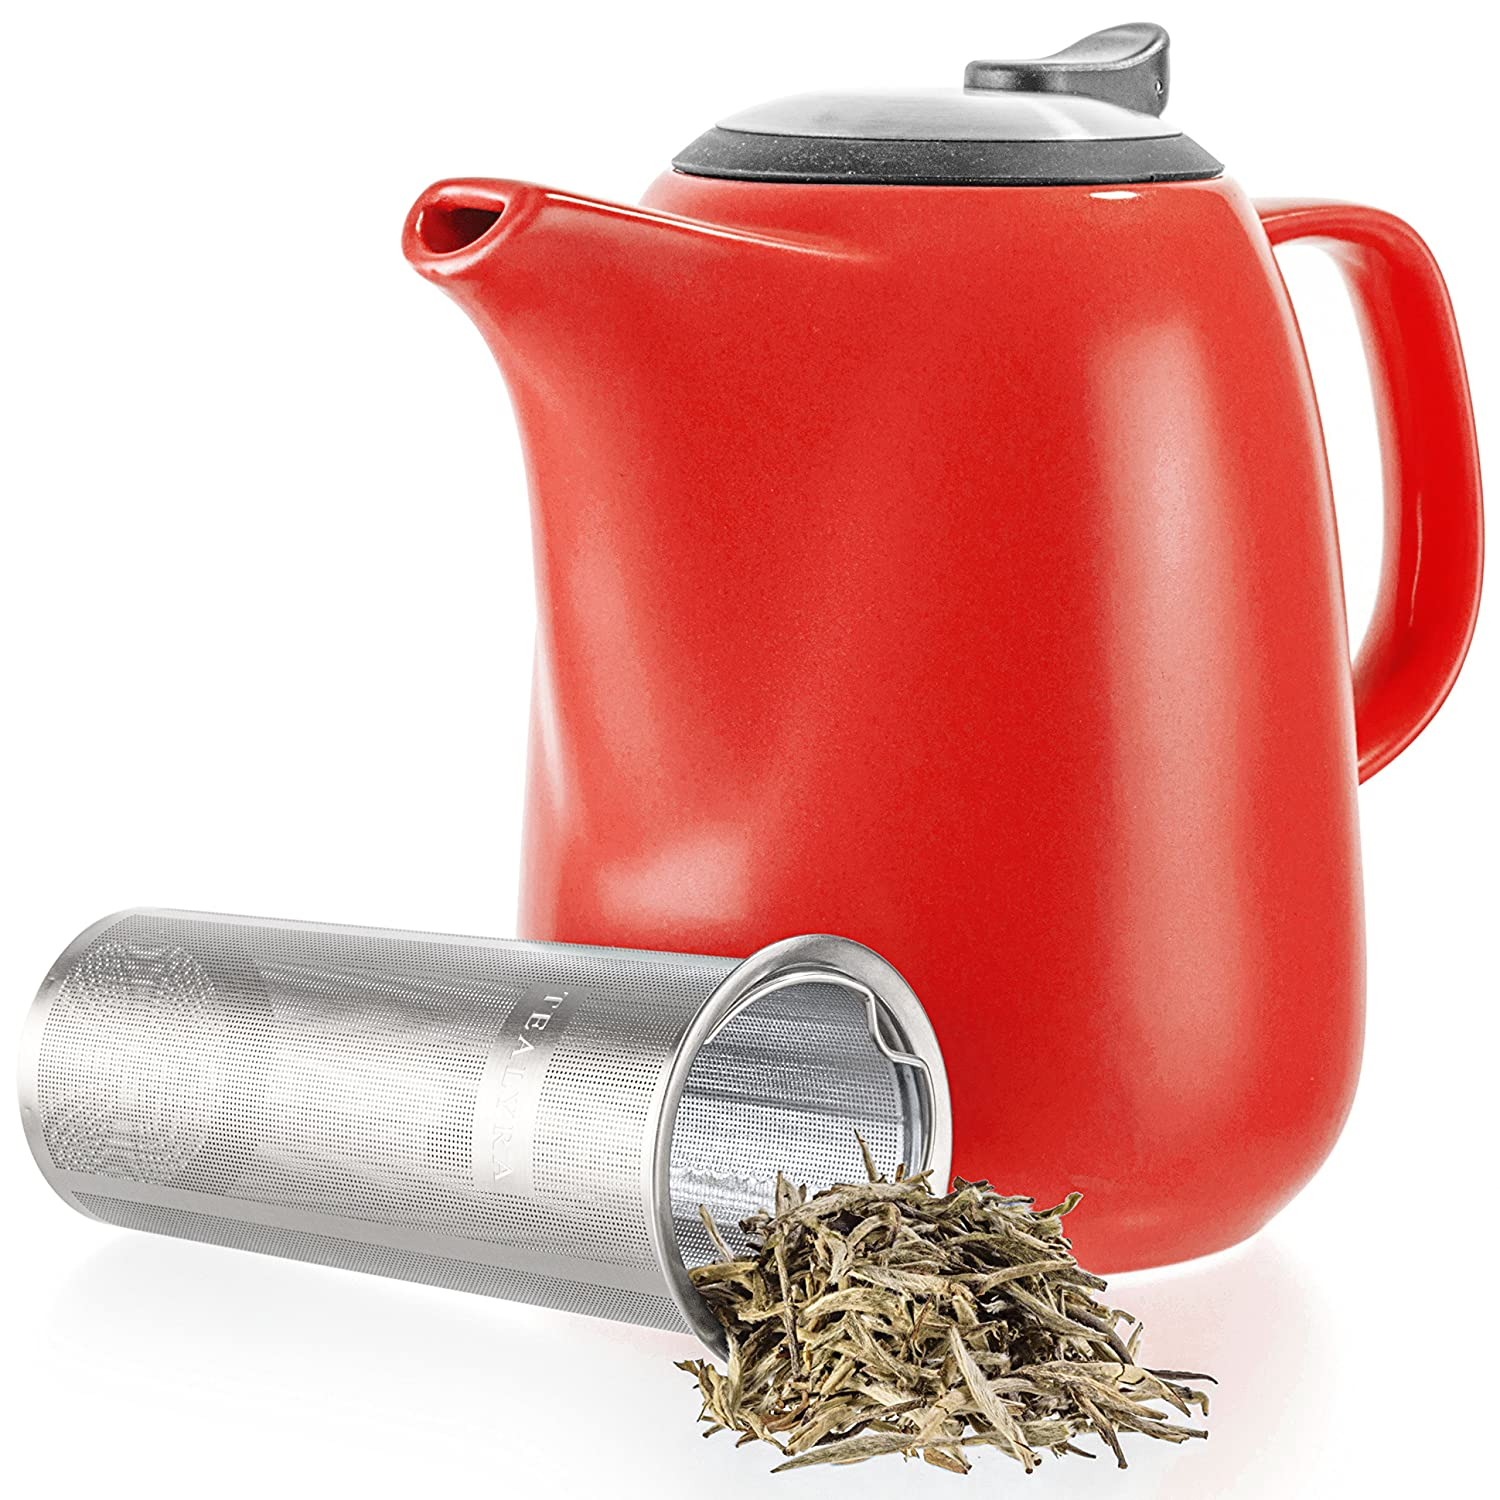 Tealyra - Daze Ceramic Large Teapot White - 1400ml (6-7 Cups) - with Stainless Steel Lid Extra-Fine Infuser for Loose Leaf Tea